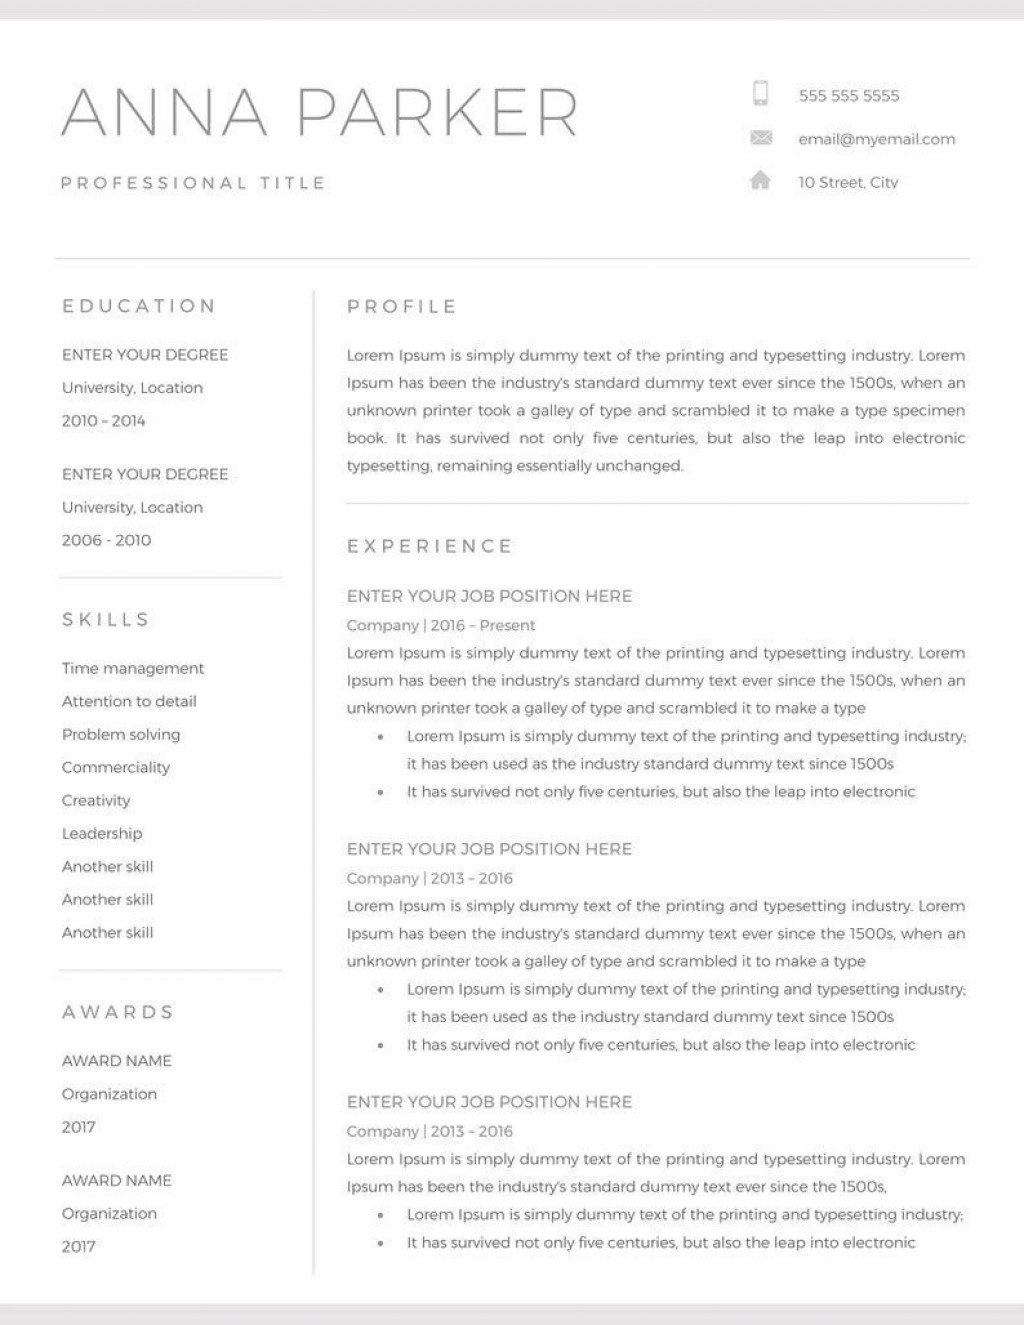 005 Astounding Basic Resume Template Word Concept  Free Download 2020Large